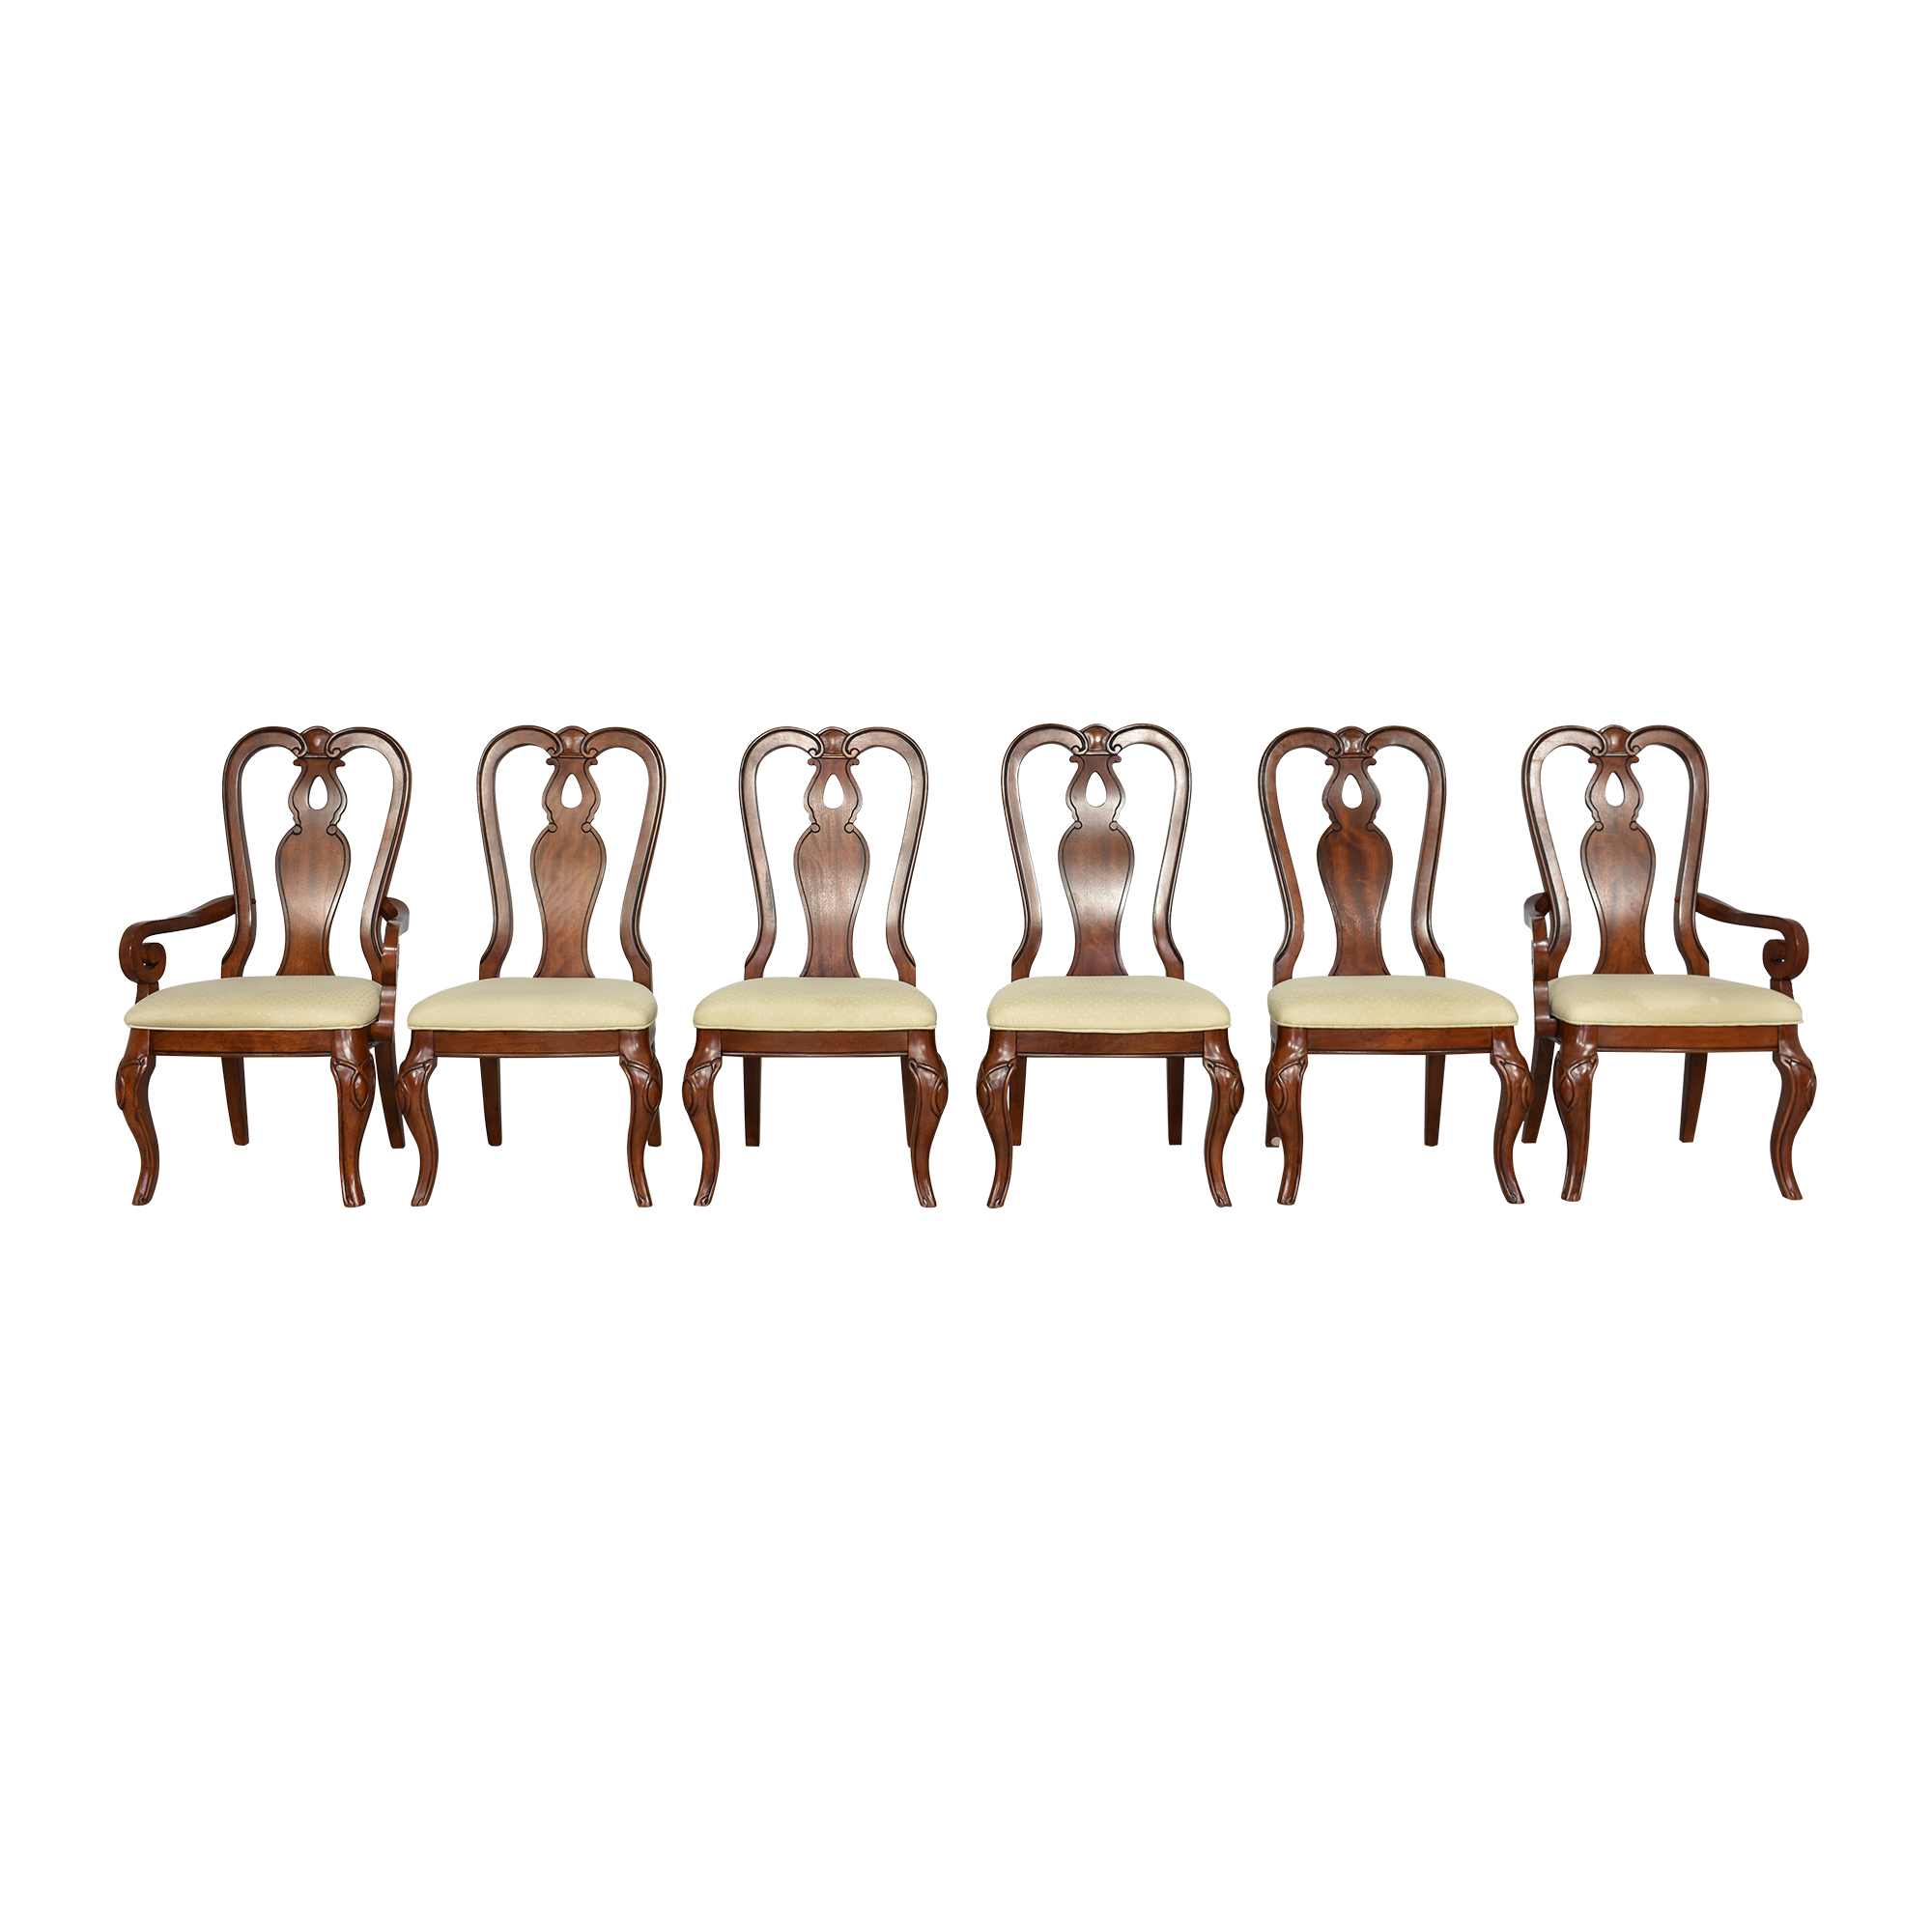 buy Legacy Classic Furniture Legacy Classic Furniture Evolution Queen Anne Dining Chairs online